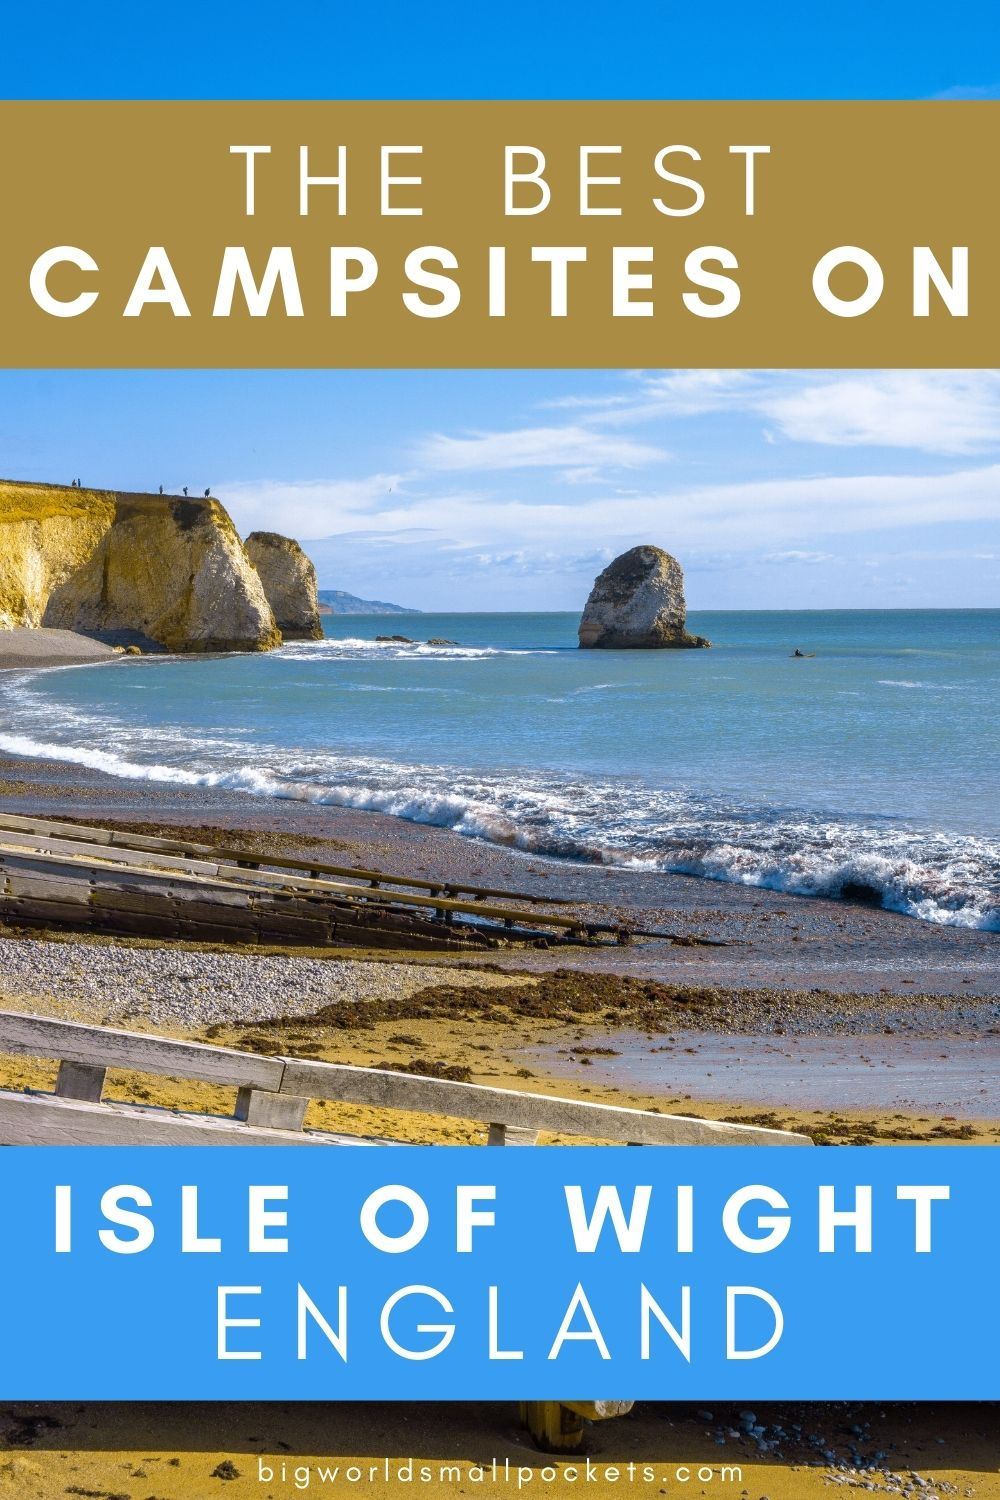 The Best Campsites on the Isle of Wight, England